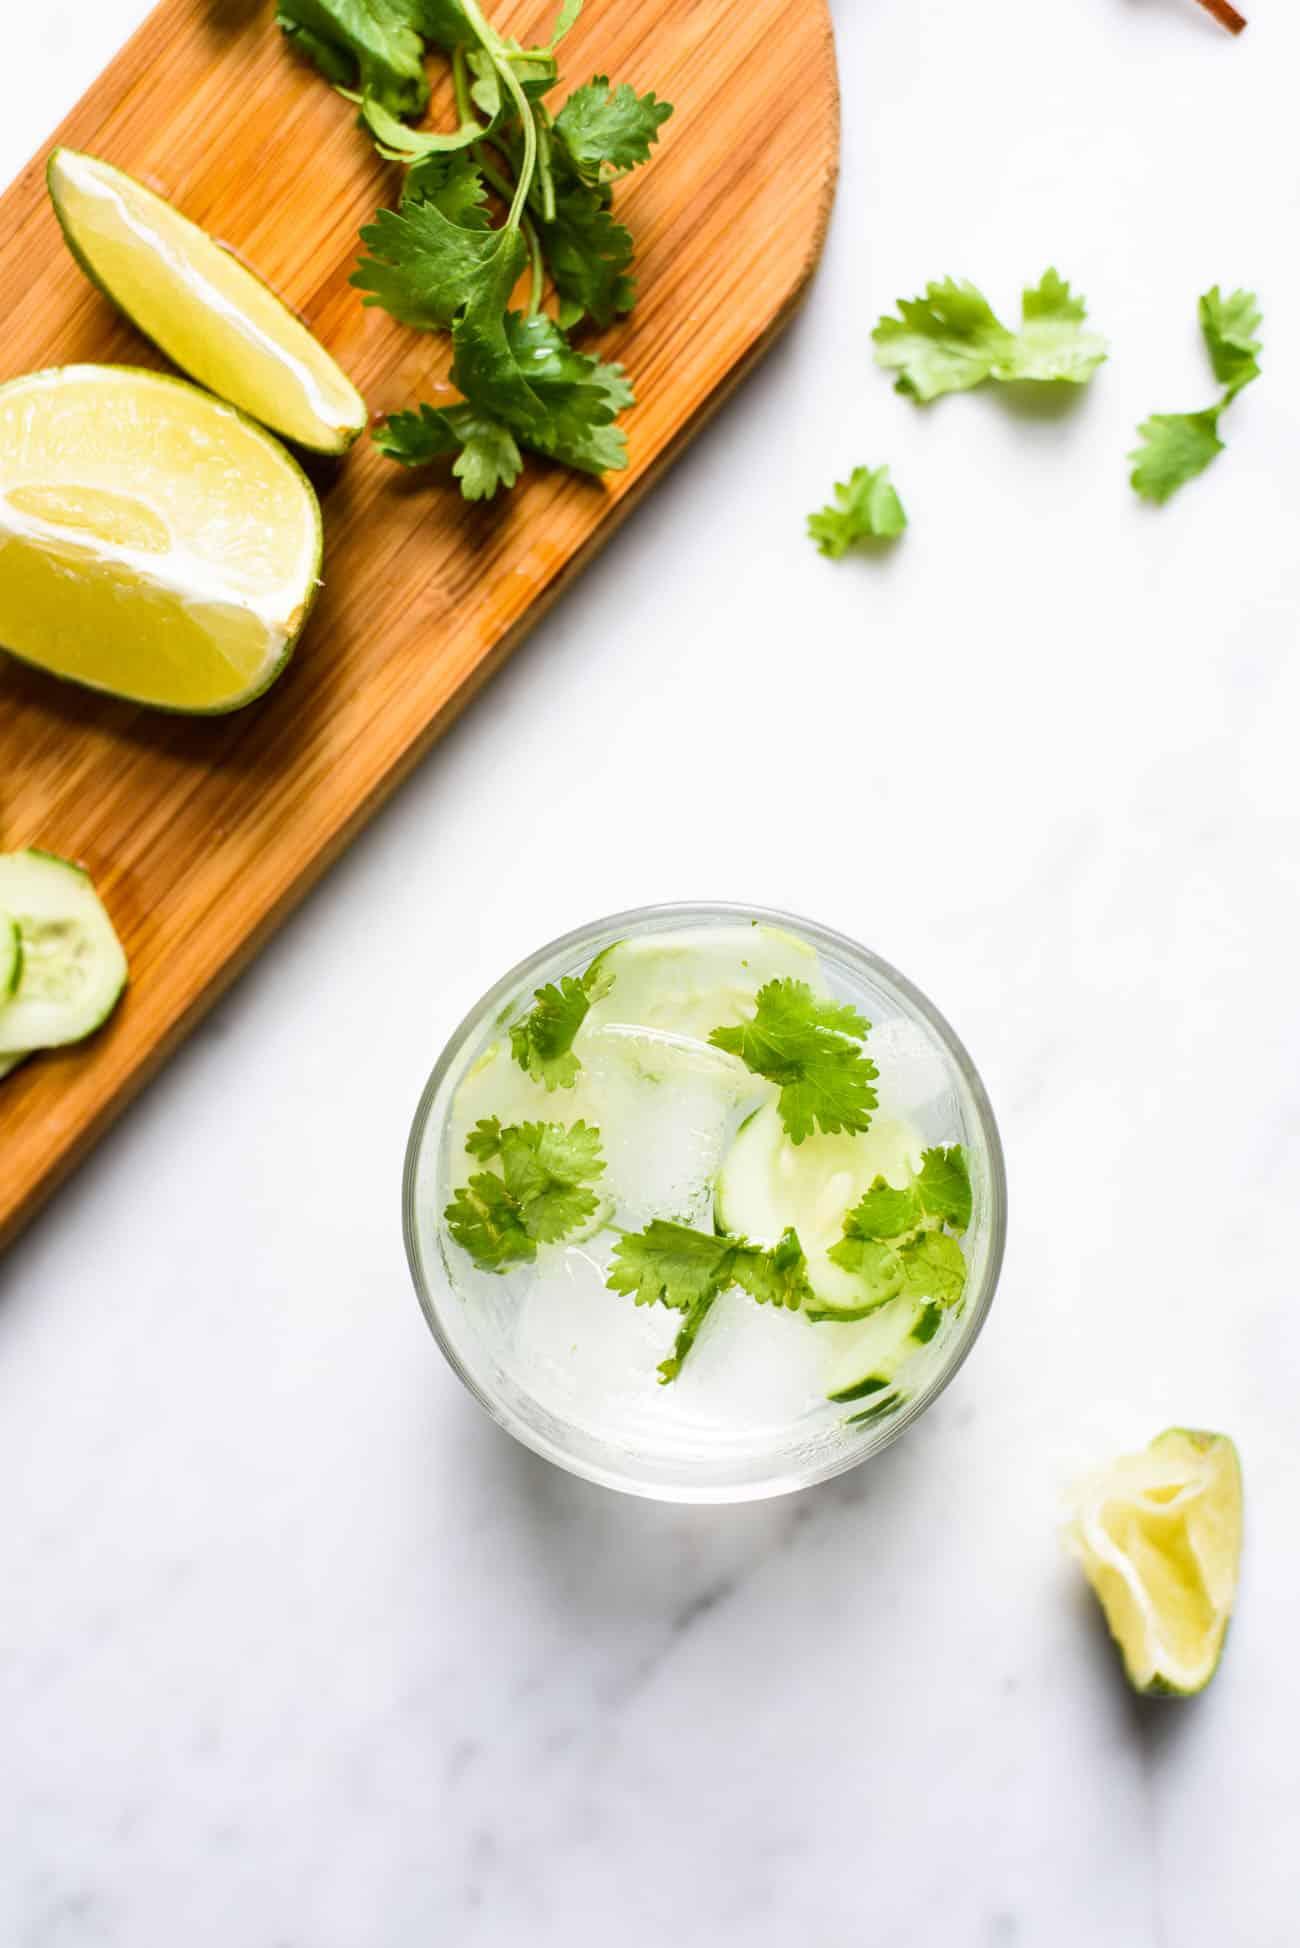 Cilantro cucumber gin and tonic on a marble table next to a wooden cutting board